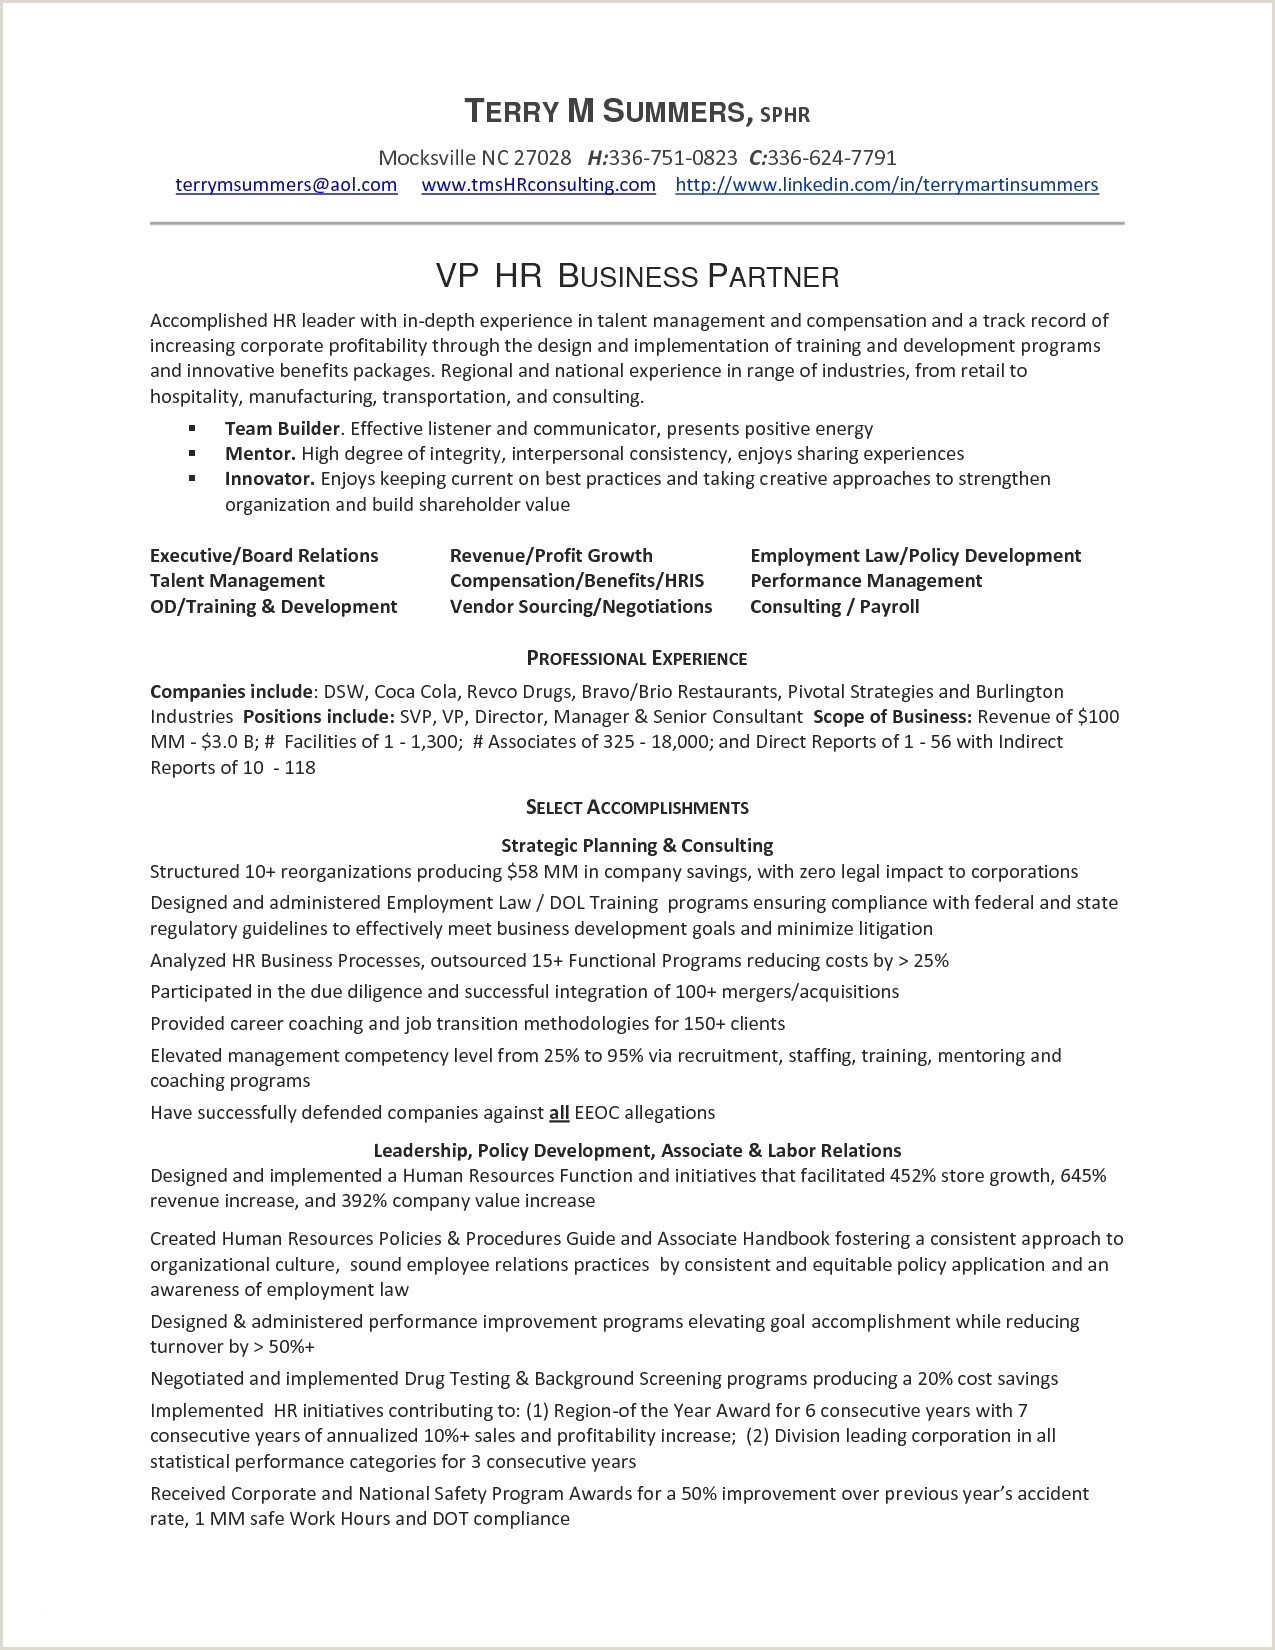 Linkedin Resume Template Free Resume Samples Consulting